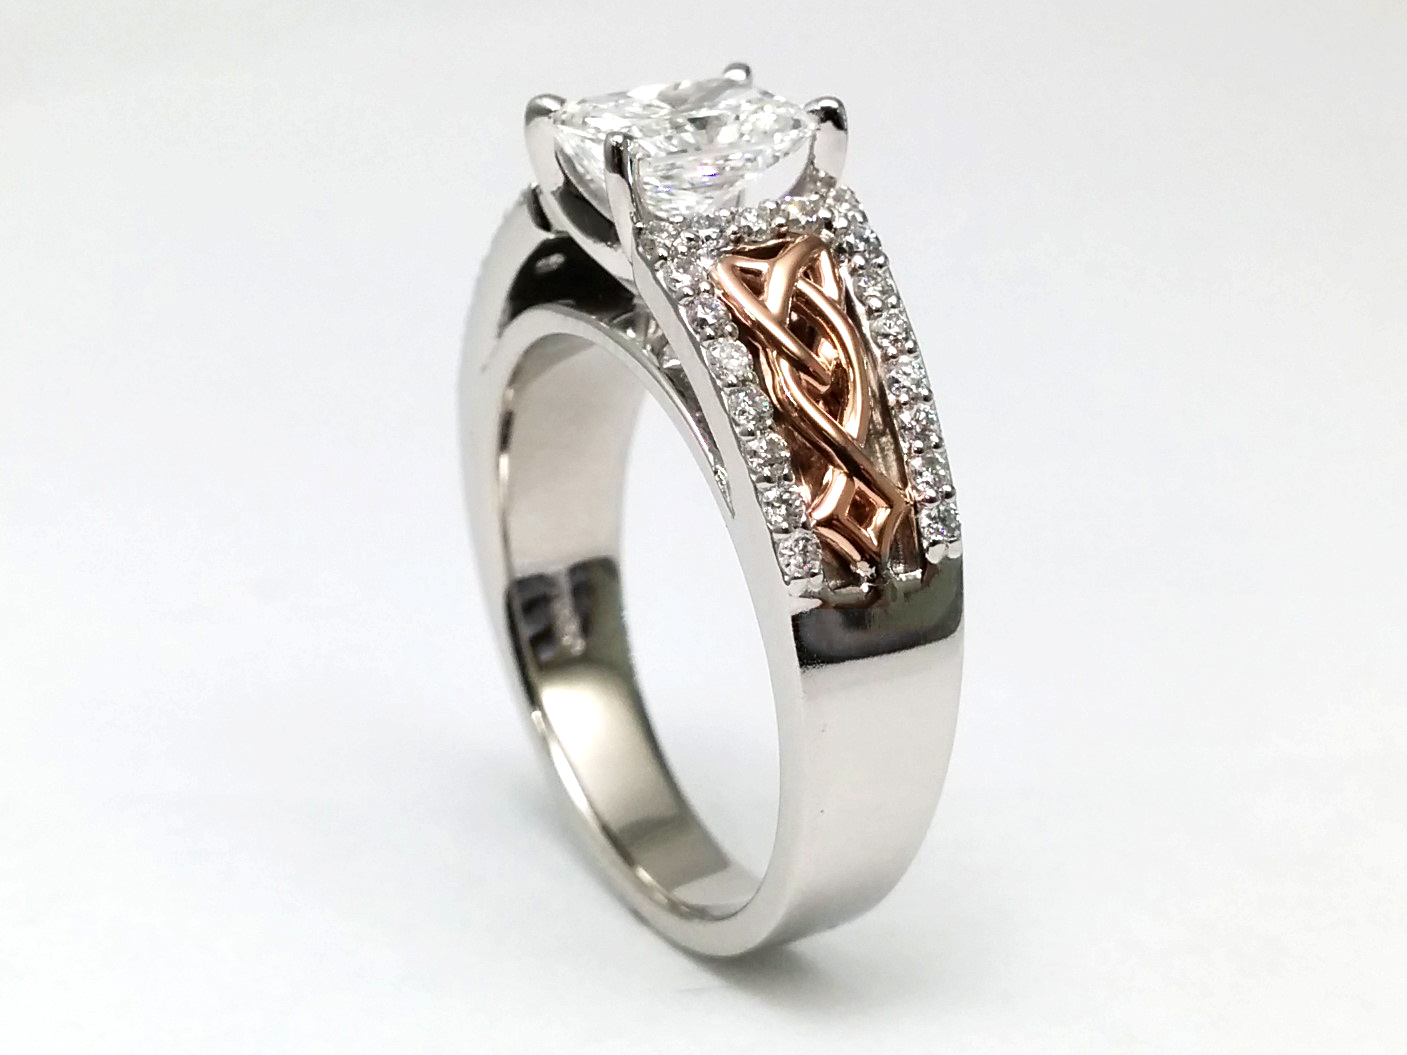 Two Tone Celtic Knot Radiant Diamond Engagement Ring, Diamond band, White & Rose Gold